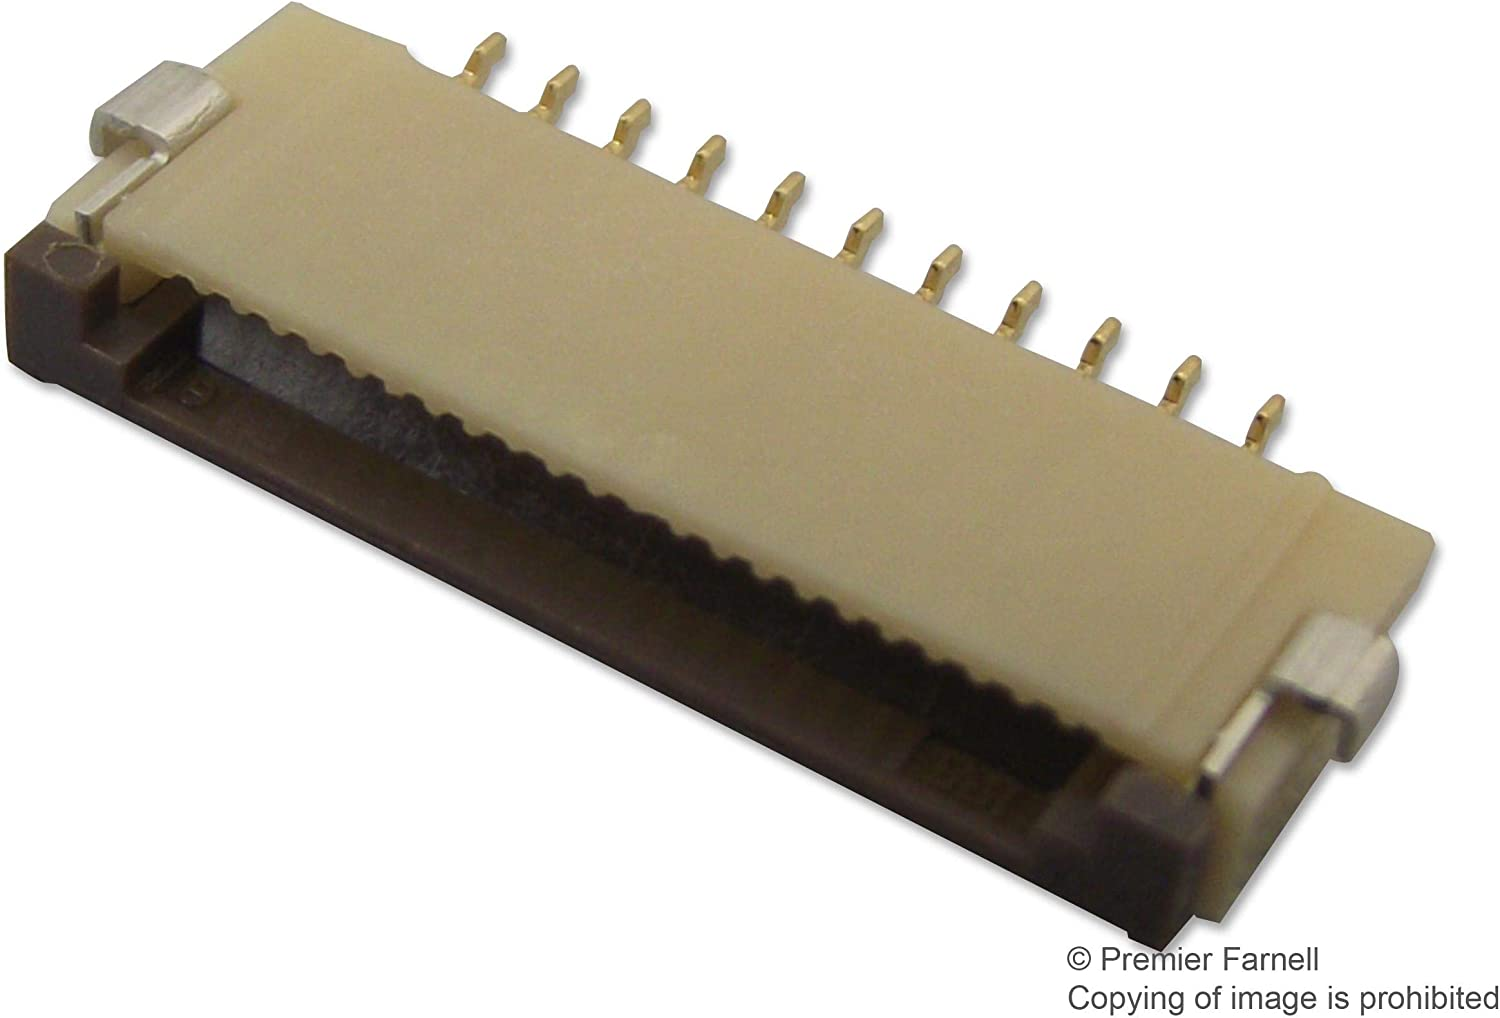 FH12 Series 11 Surface Mount Bottom 1 mm RoHS Compliant: Yes, - FFC//FPC Board Connector Receptacle Pack of 20 FH12-11S-1SH 55